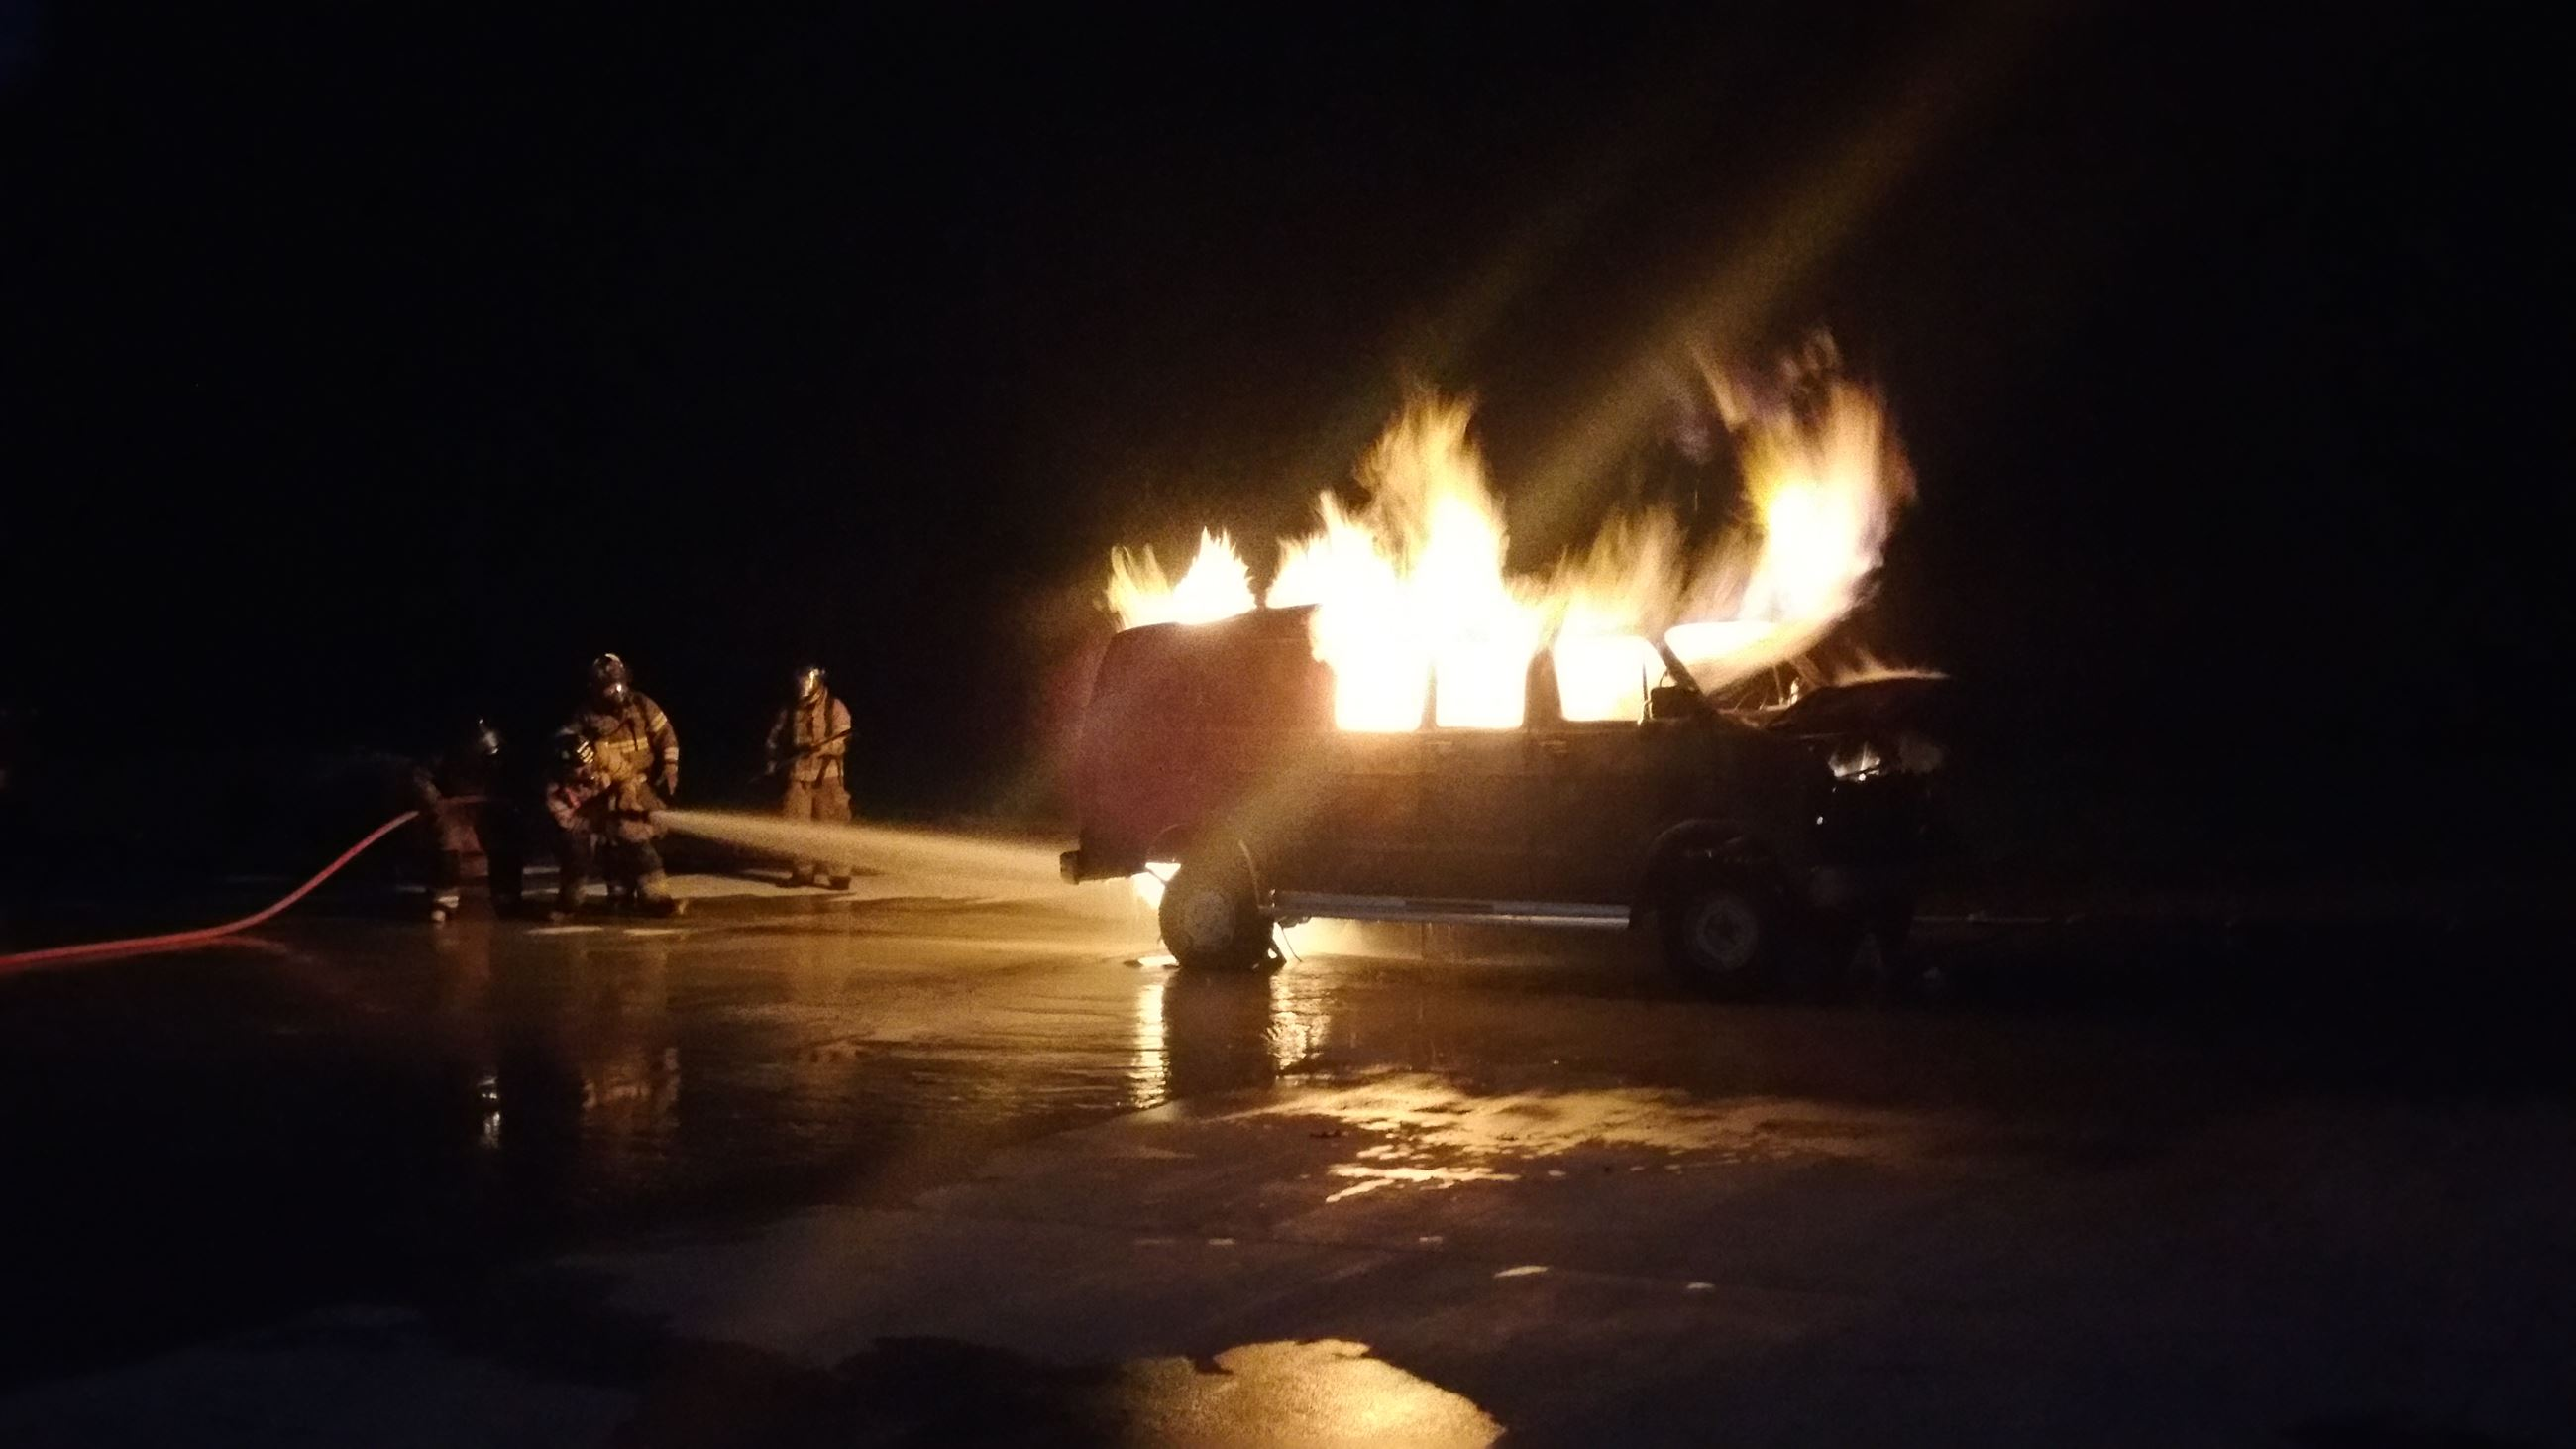 Car fire training 3